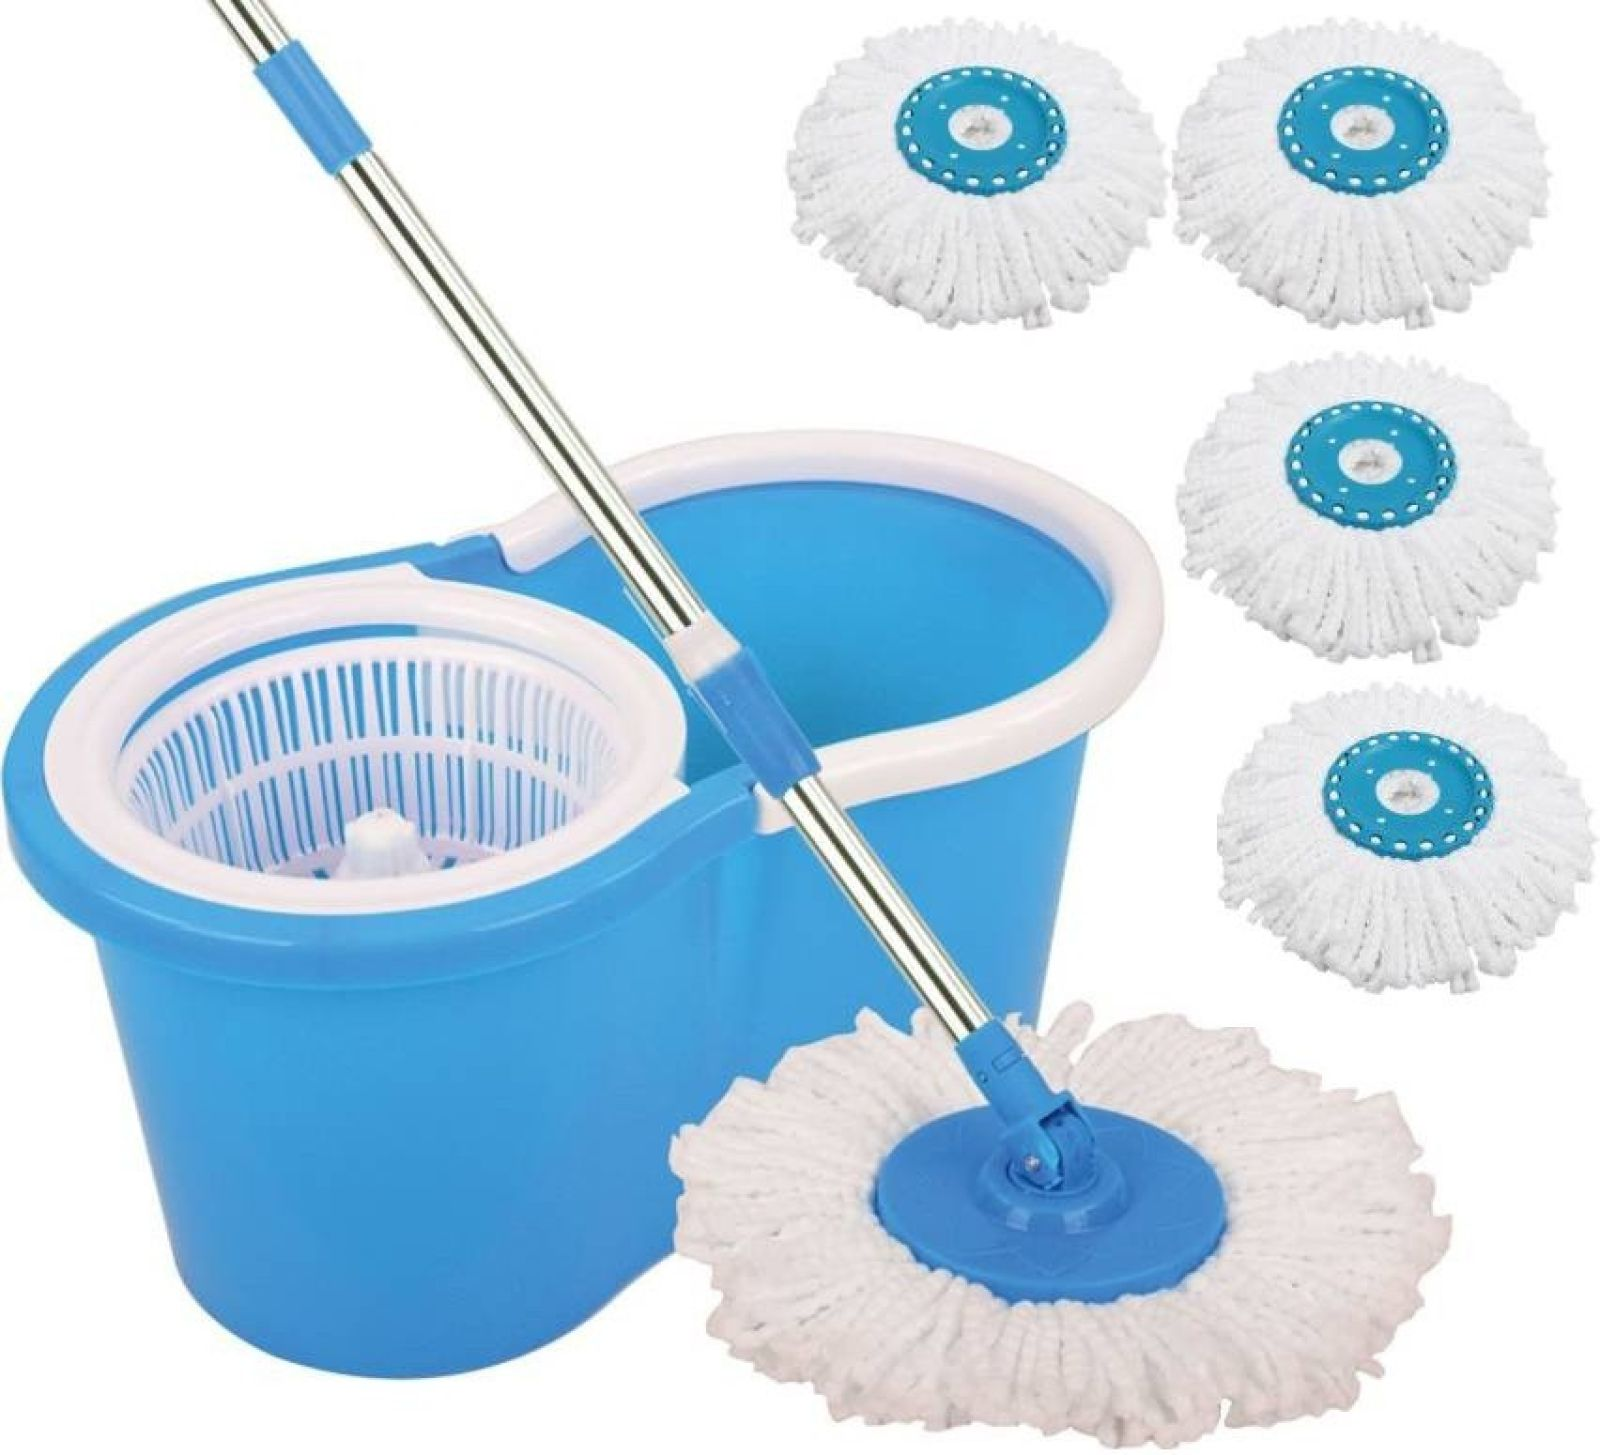 CheckSums 11033 Magic Dry Bucket Mop - 360 Degree Self Spin Wringing With 4 Super Absorbers for Home & Office Floor Cleaning Home Cleaning Set